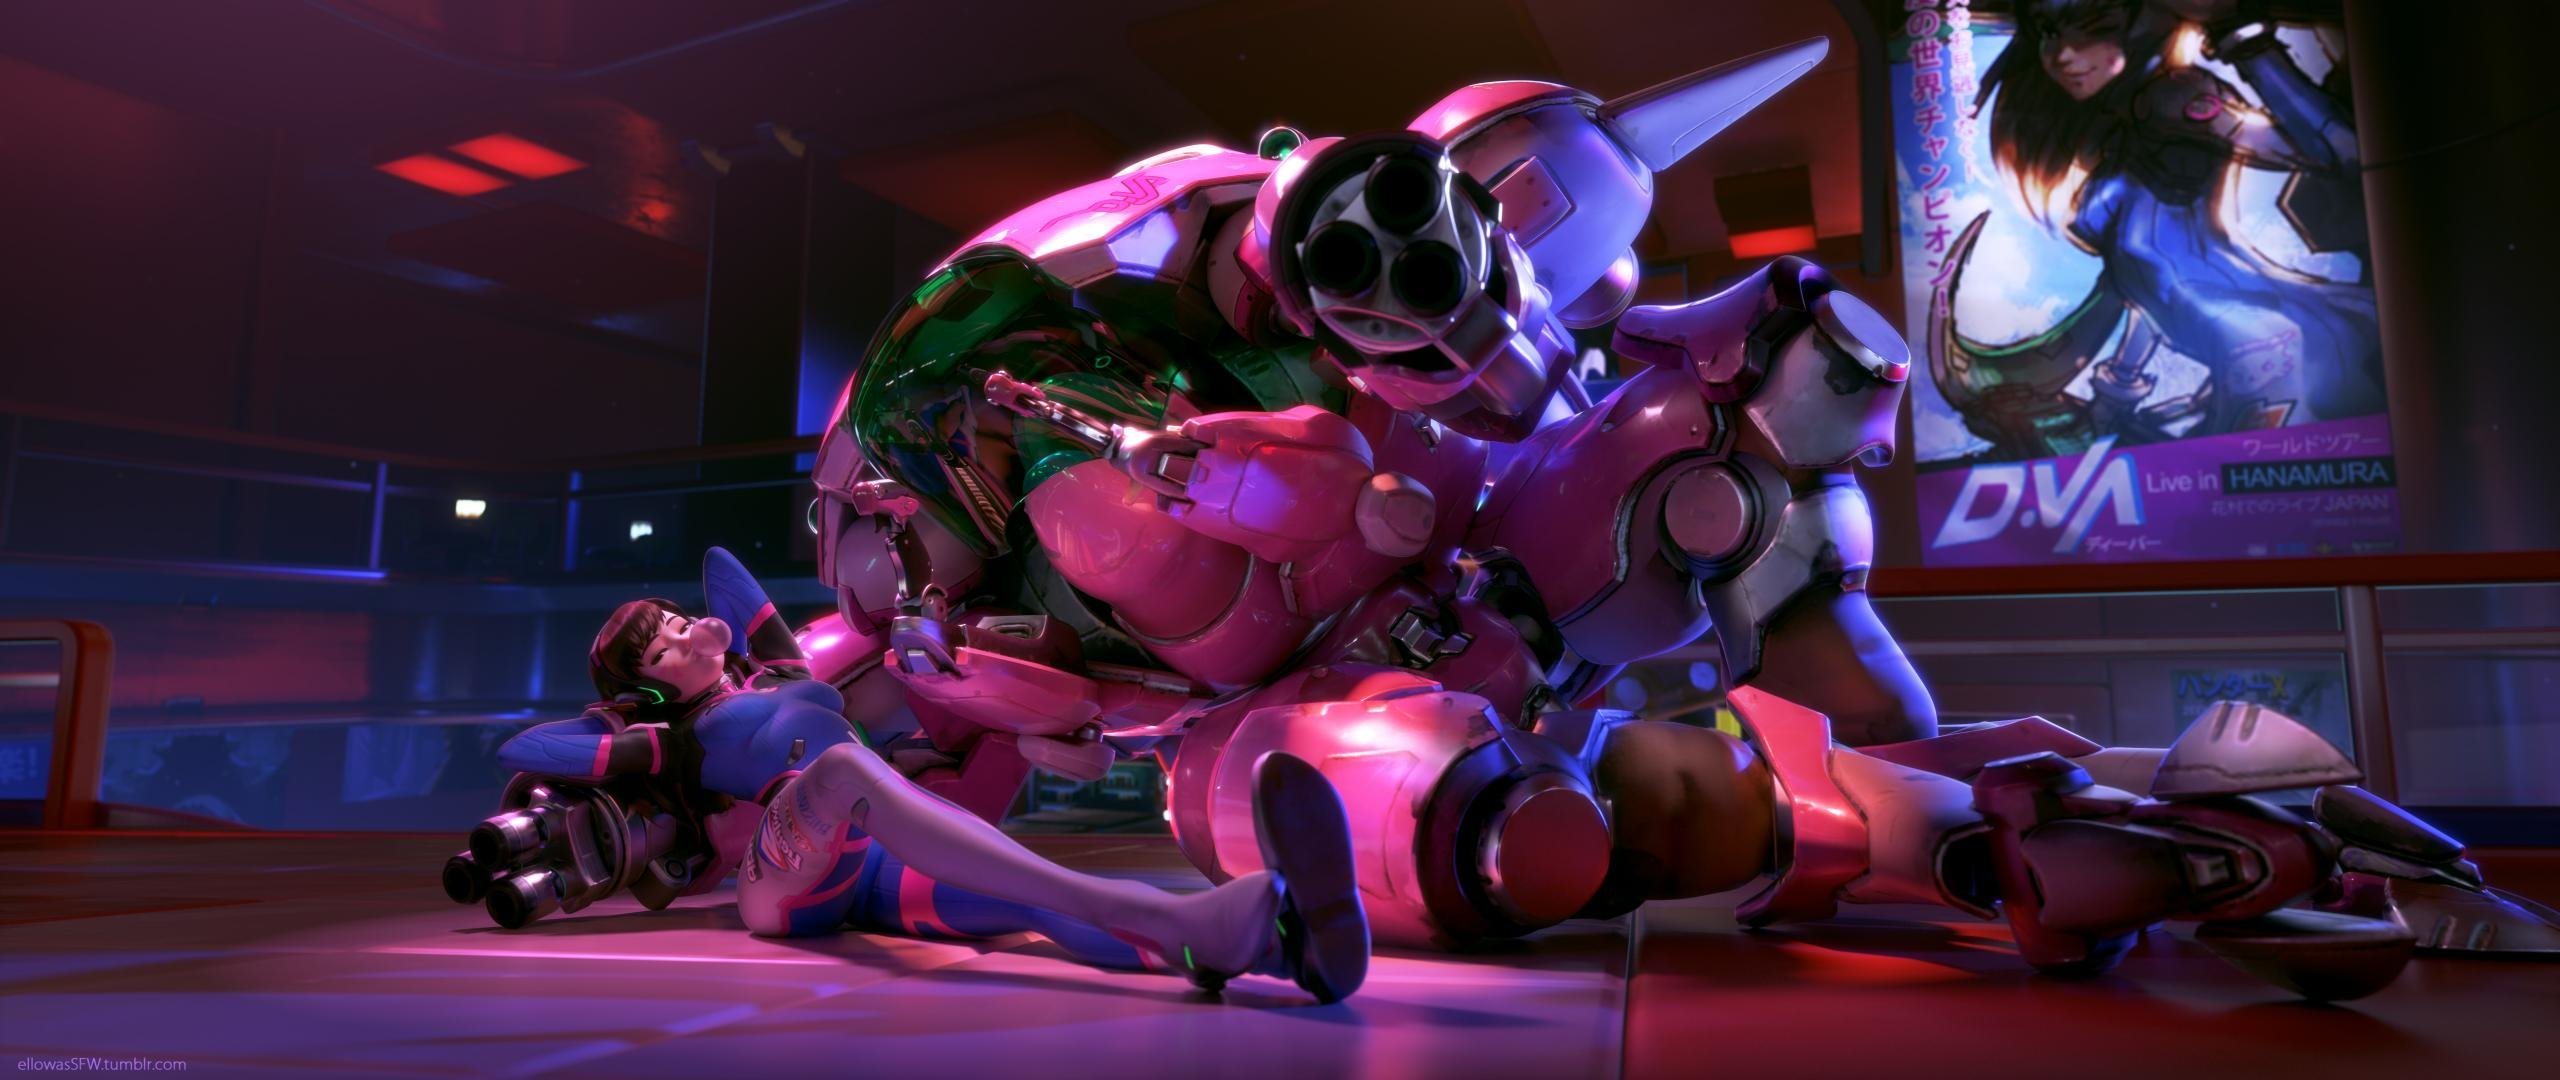 Free Dva Overwatch High Quality Wallpaper Id170292 For